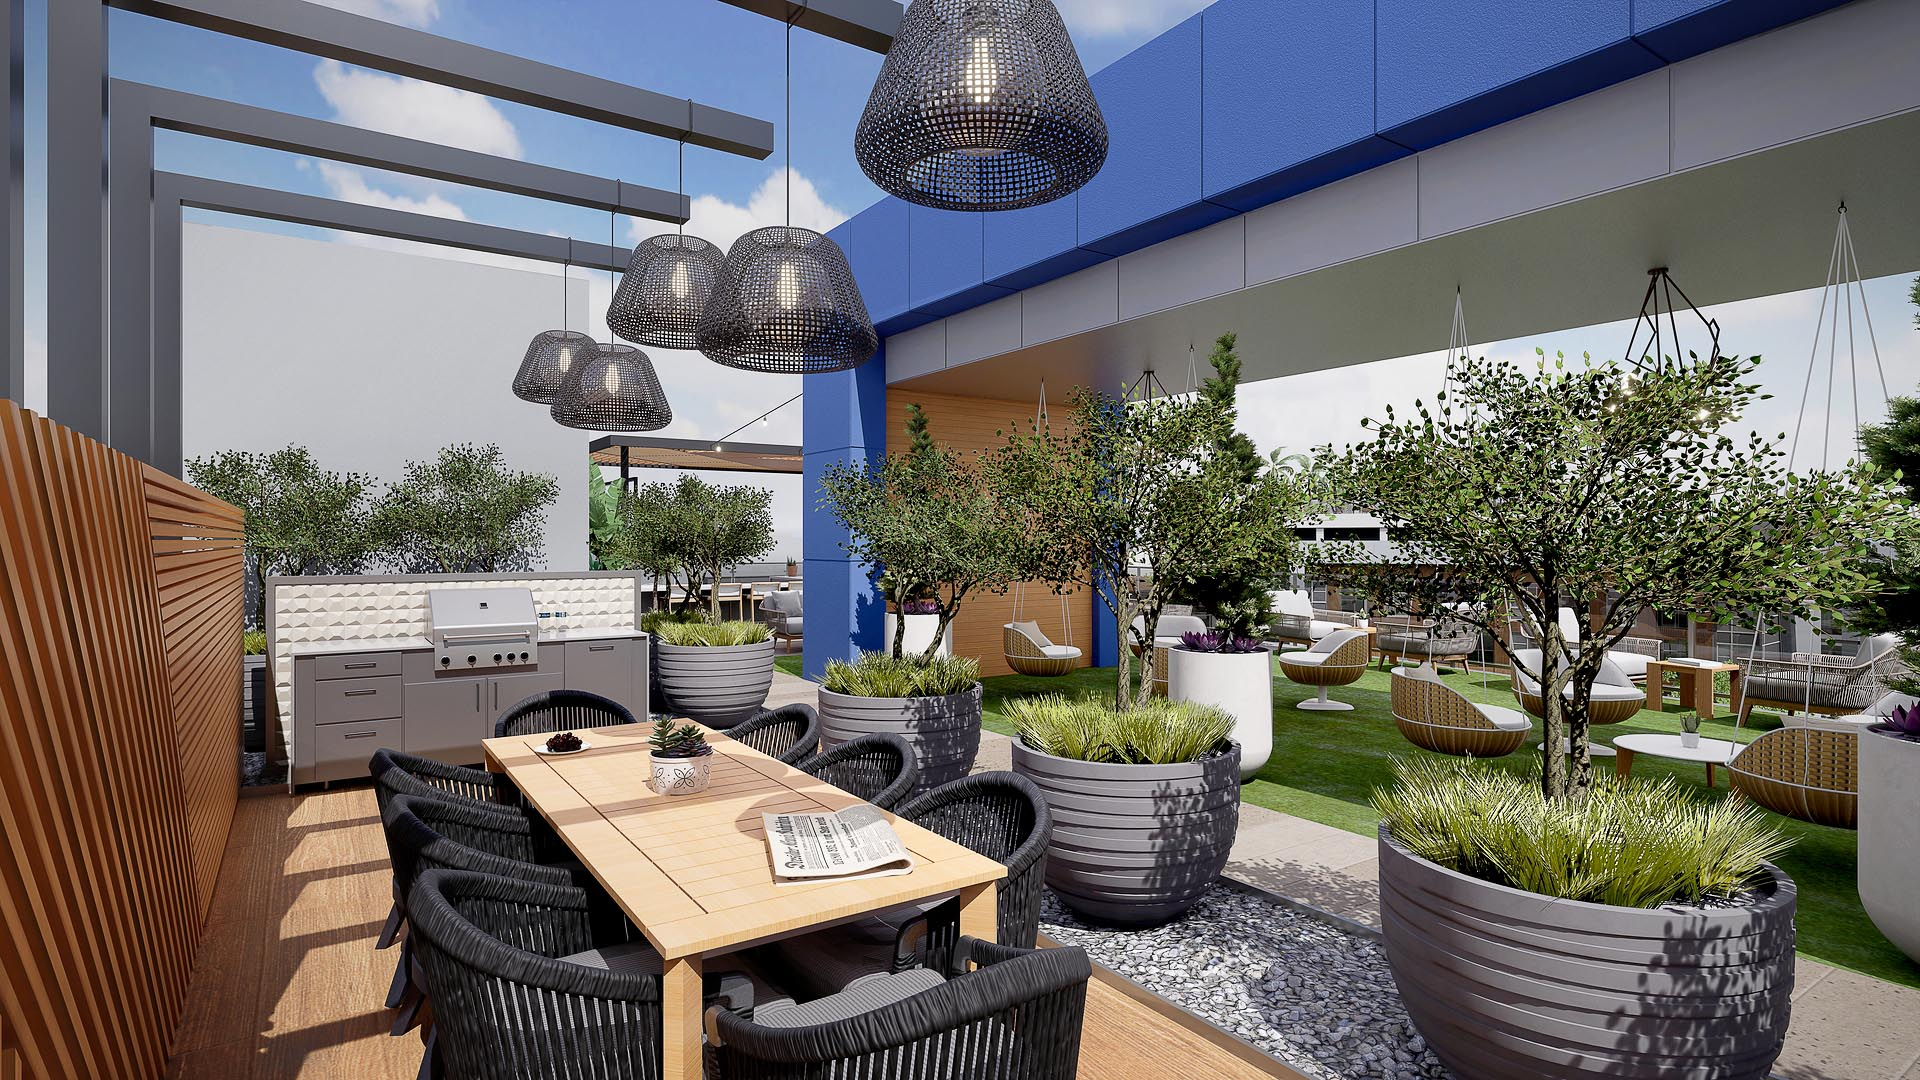 A rooftop dining area with foliage